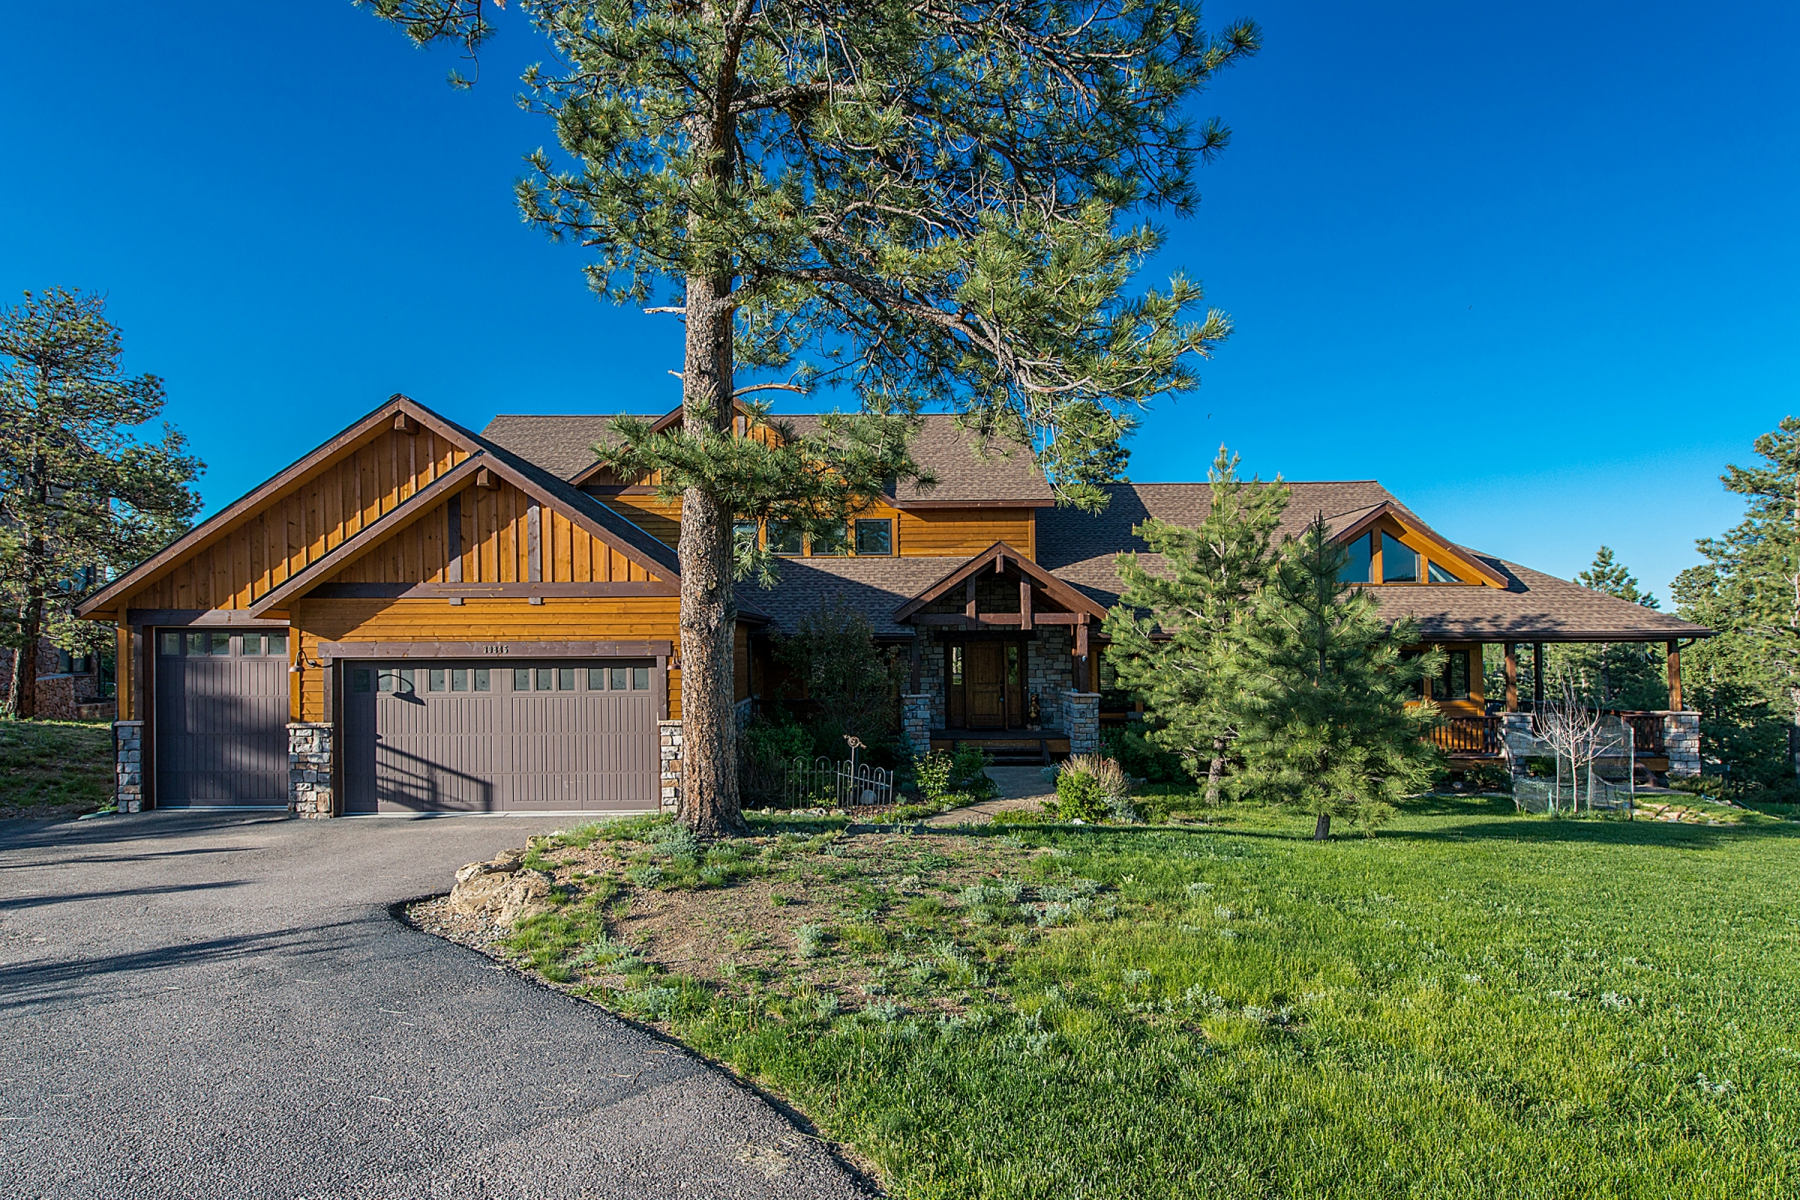 Single Family Home for Sale at Majestic Living Masterpiece 30845 Tanoa Road Evergreen, Colorado 80439 United States